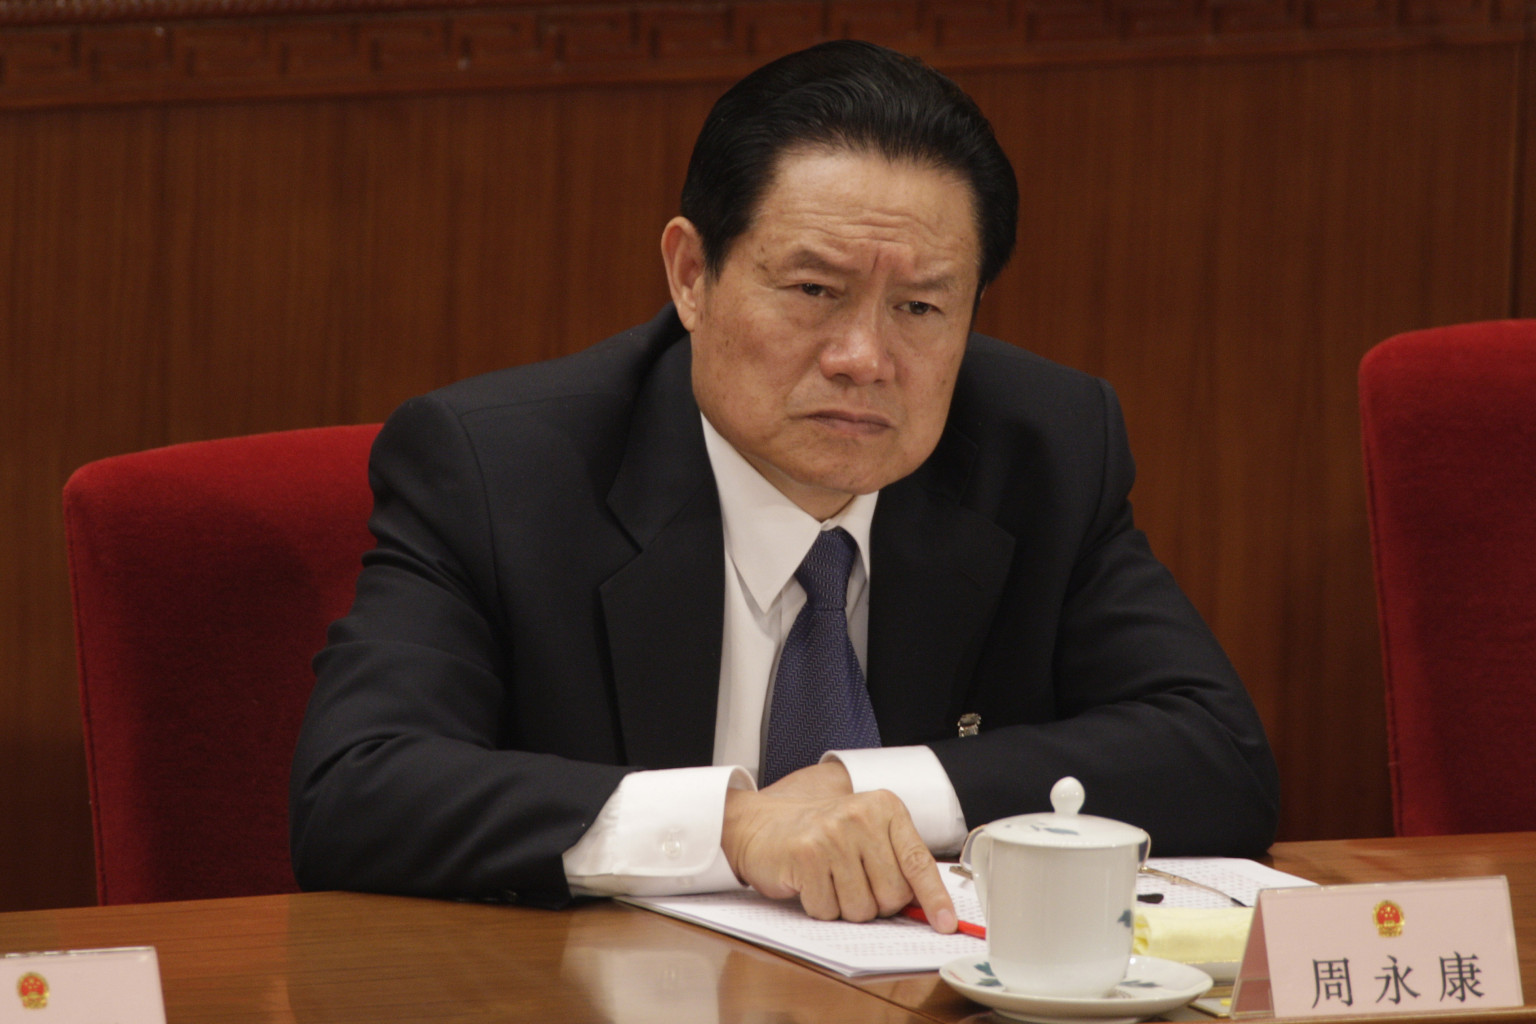 Corruption investigation targets China's former internal security boss